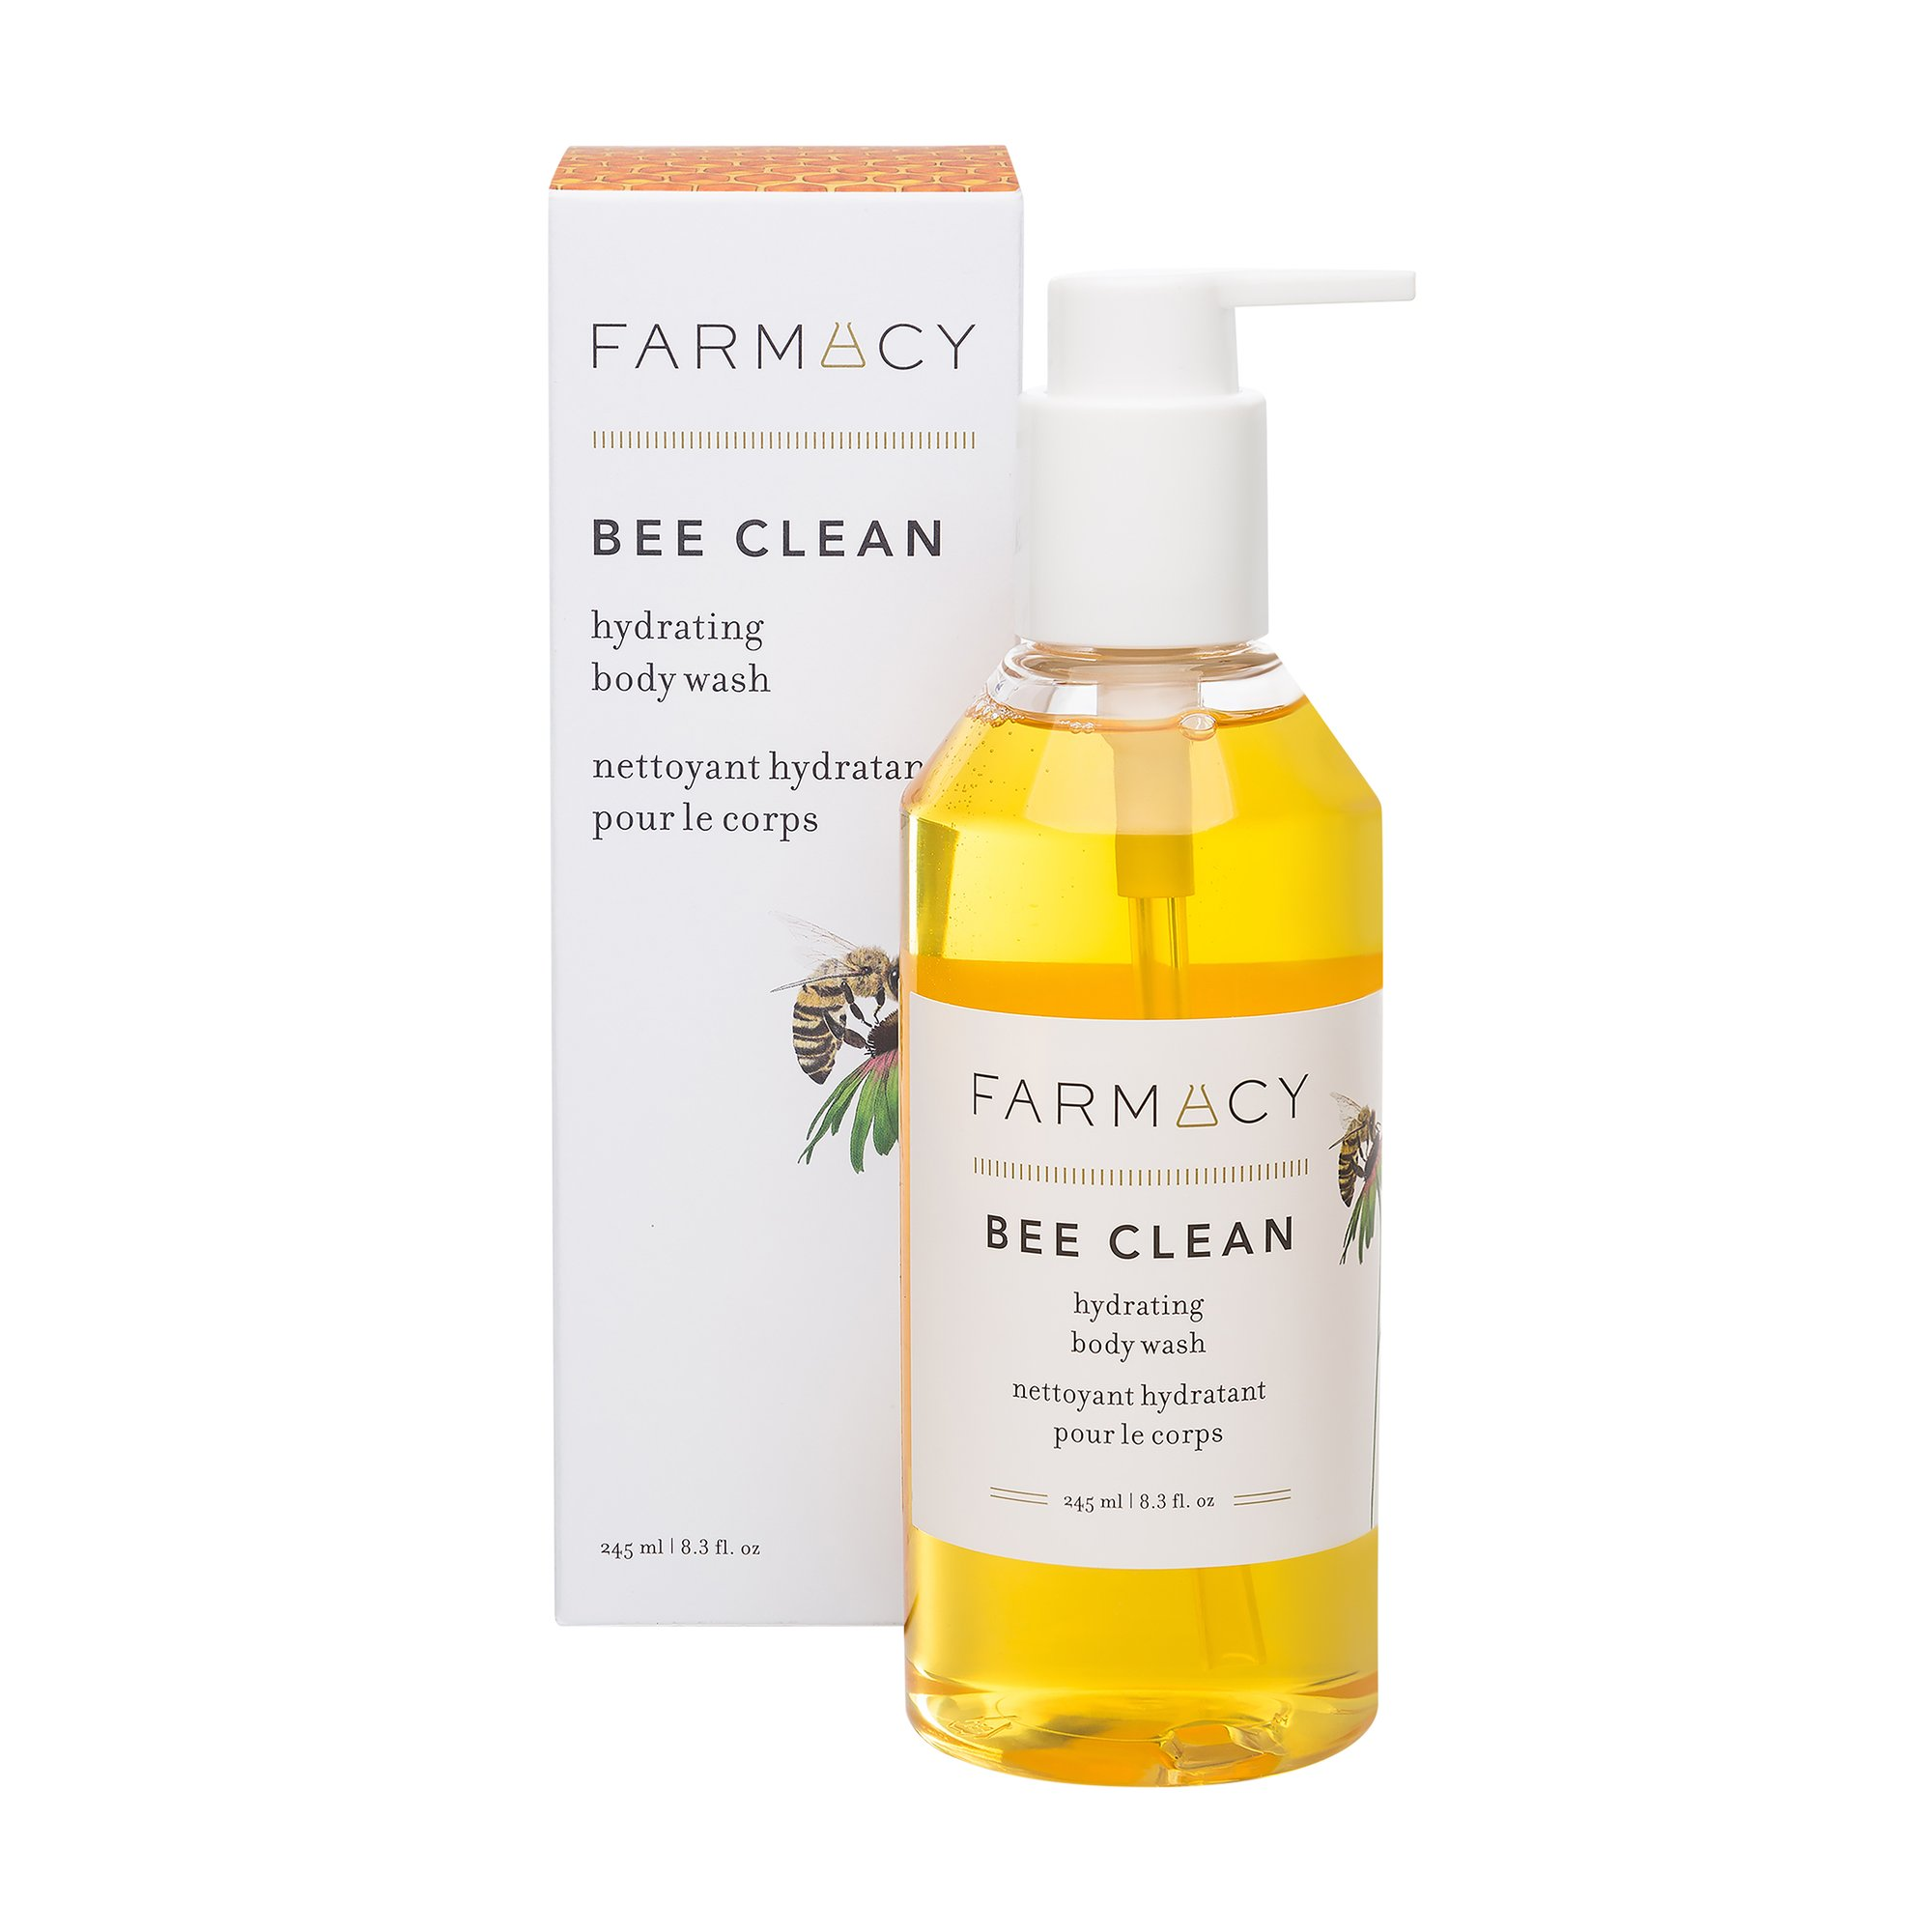 Farmacy Bee Clean Hydrating Body Wash